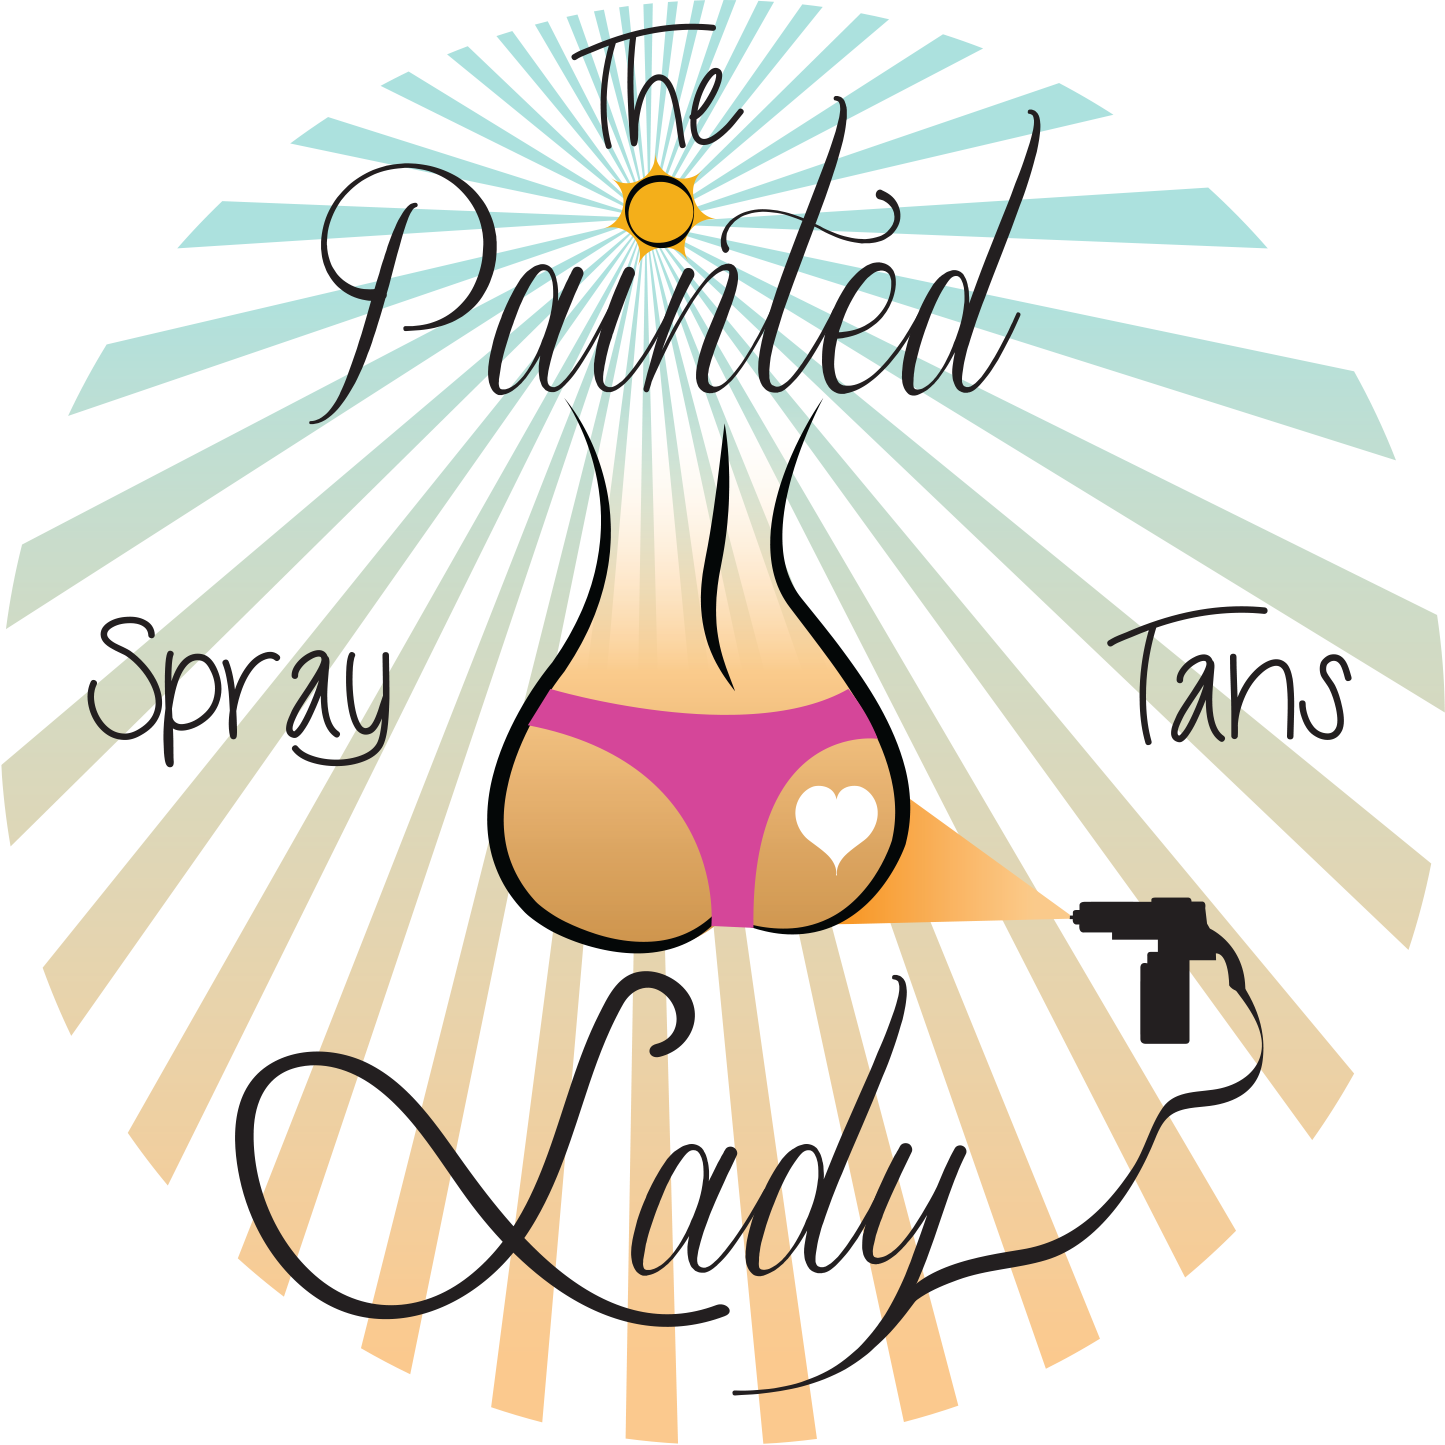 The Painted Lady Spray Tans